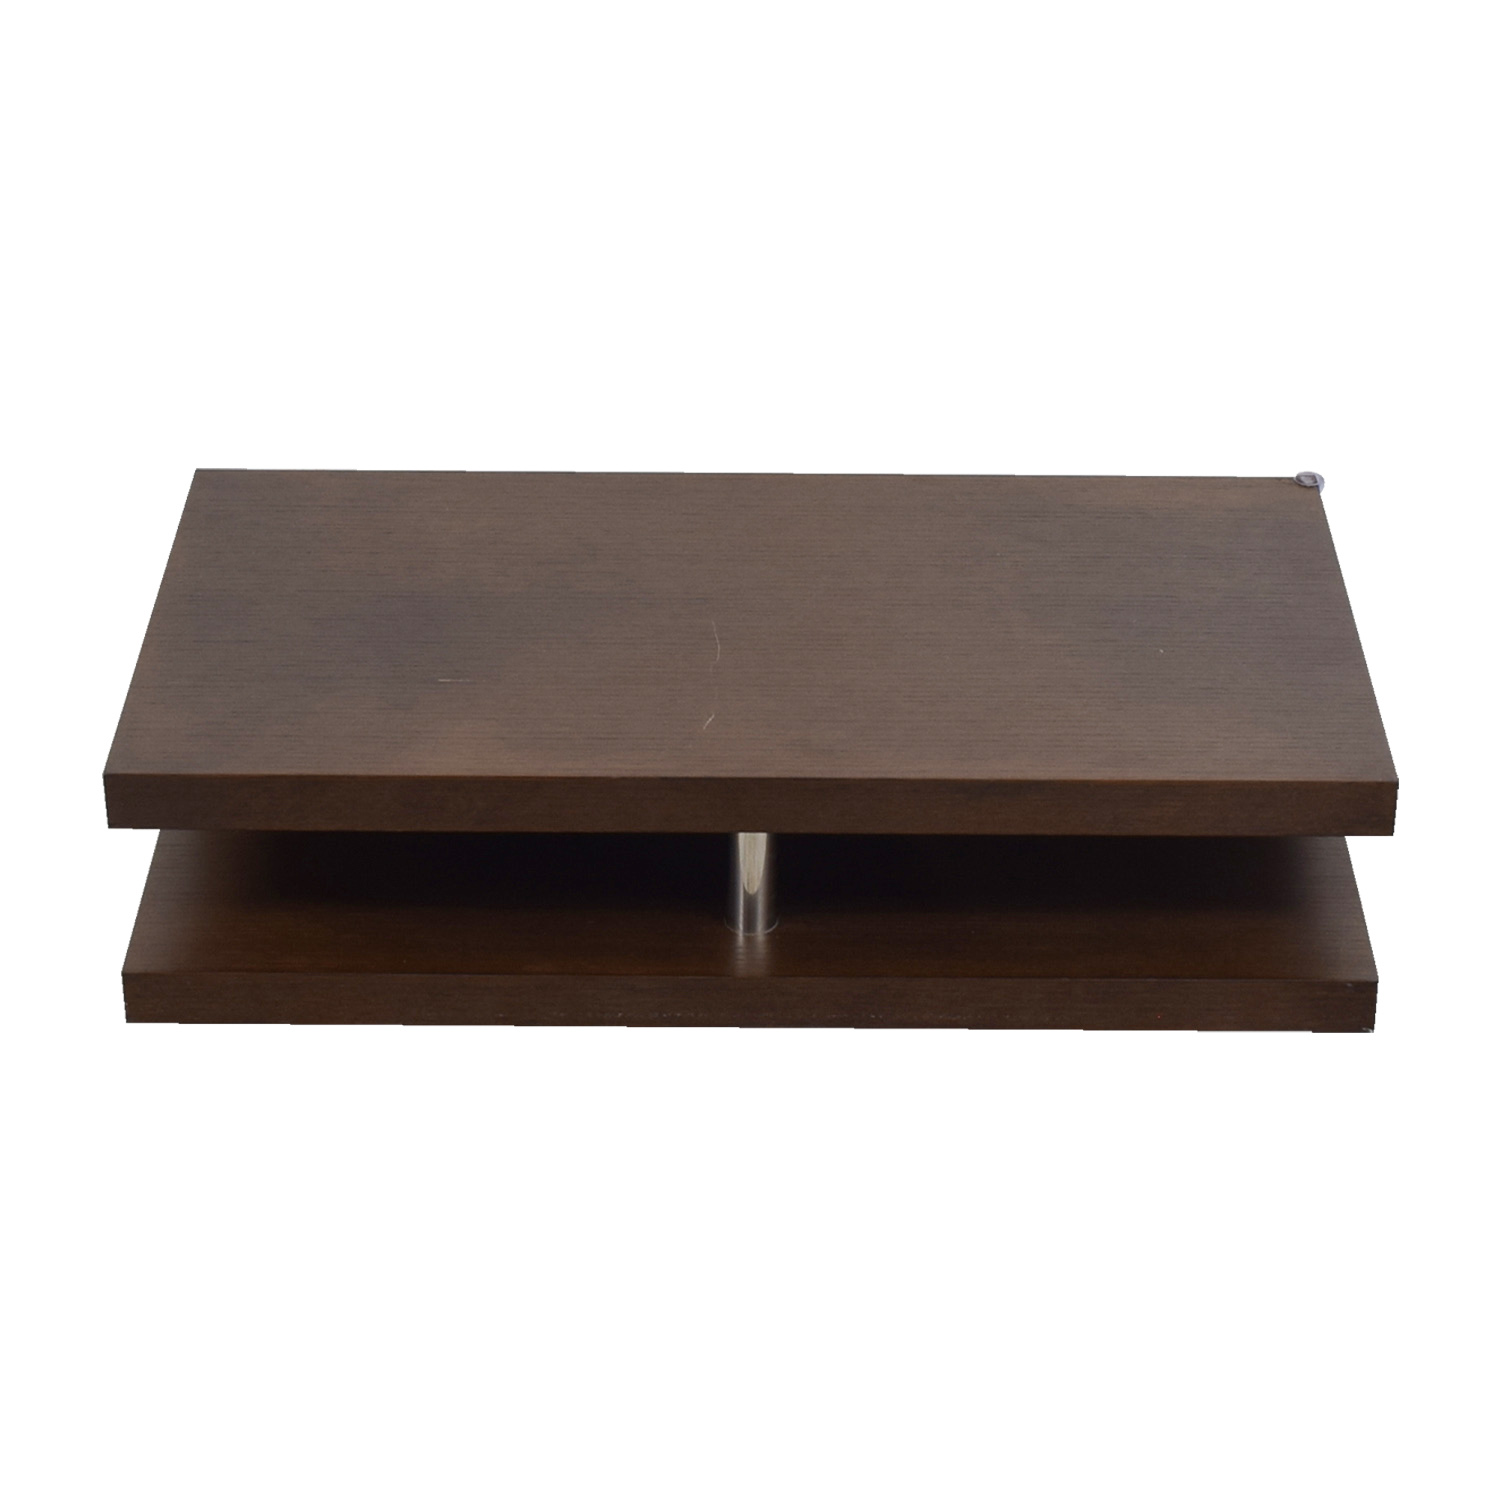 Dual Level Brown Coffee Table for sale